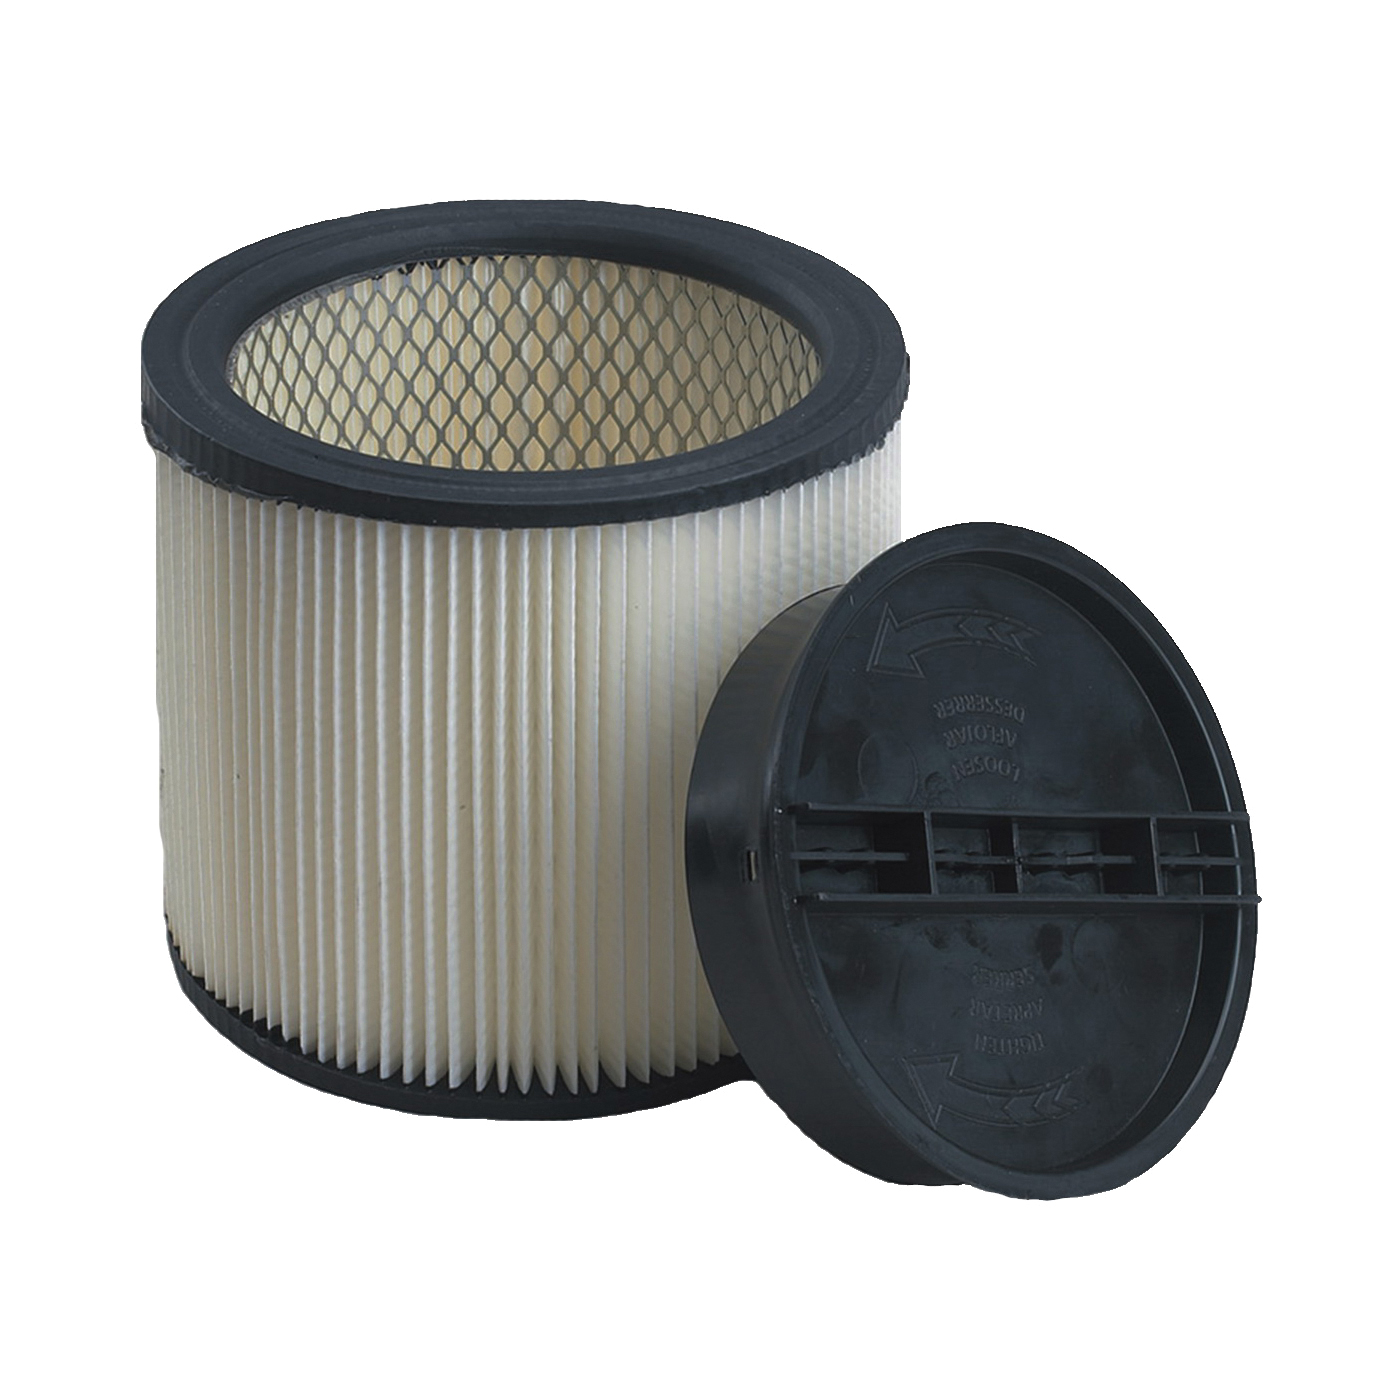 Picture of Shop-Vac 9030400 Cartridge Filter, 8 in Dia